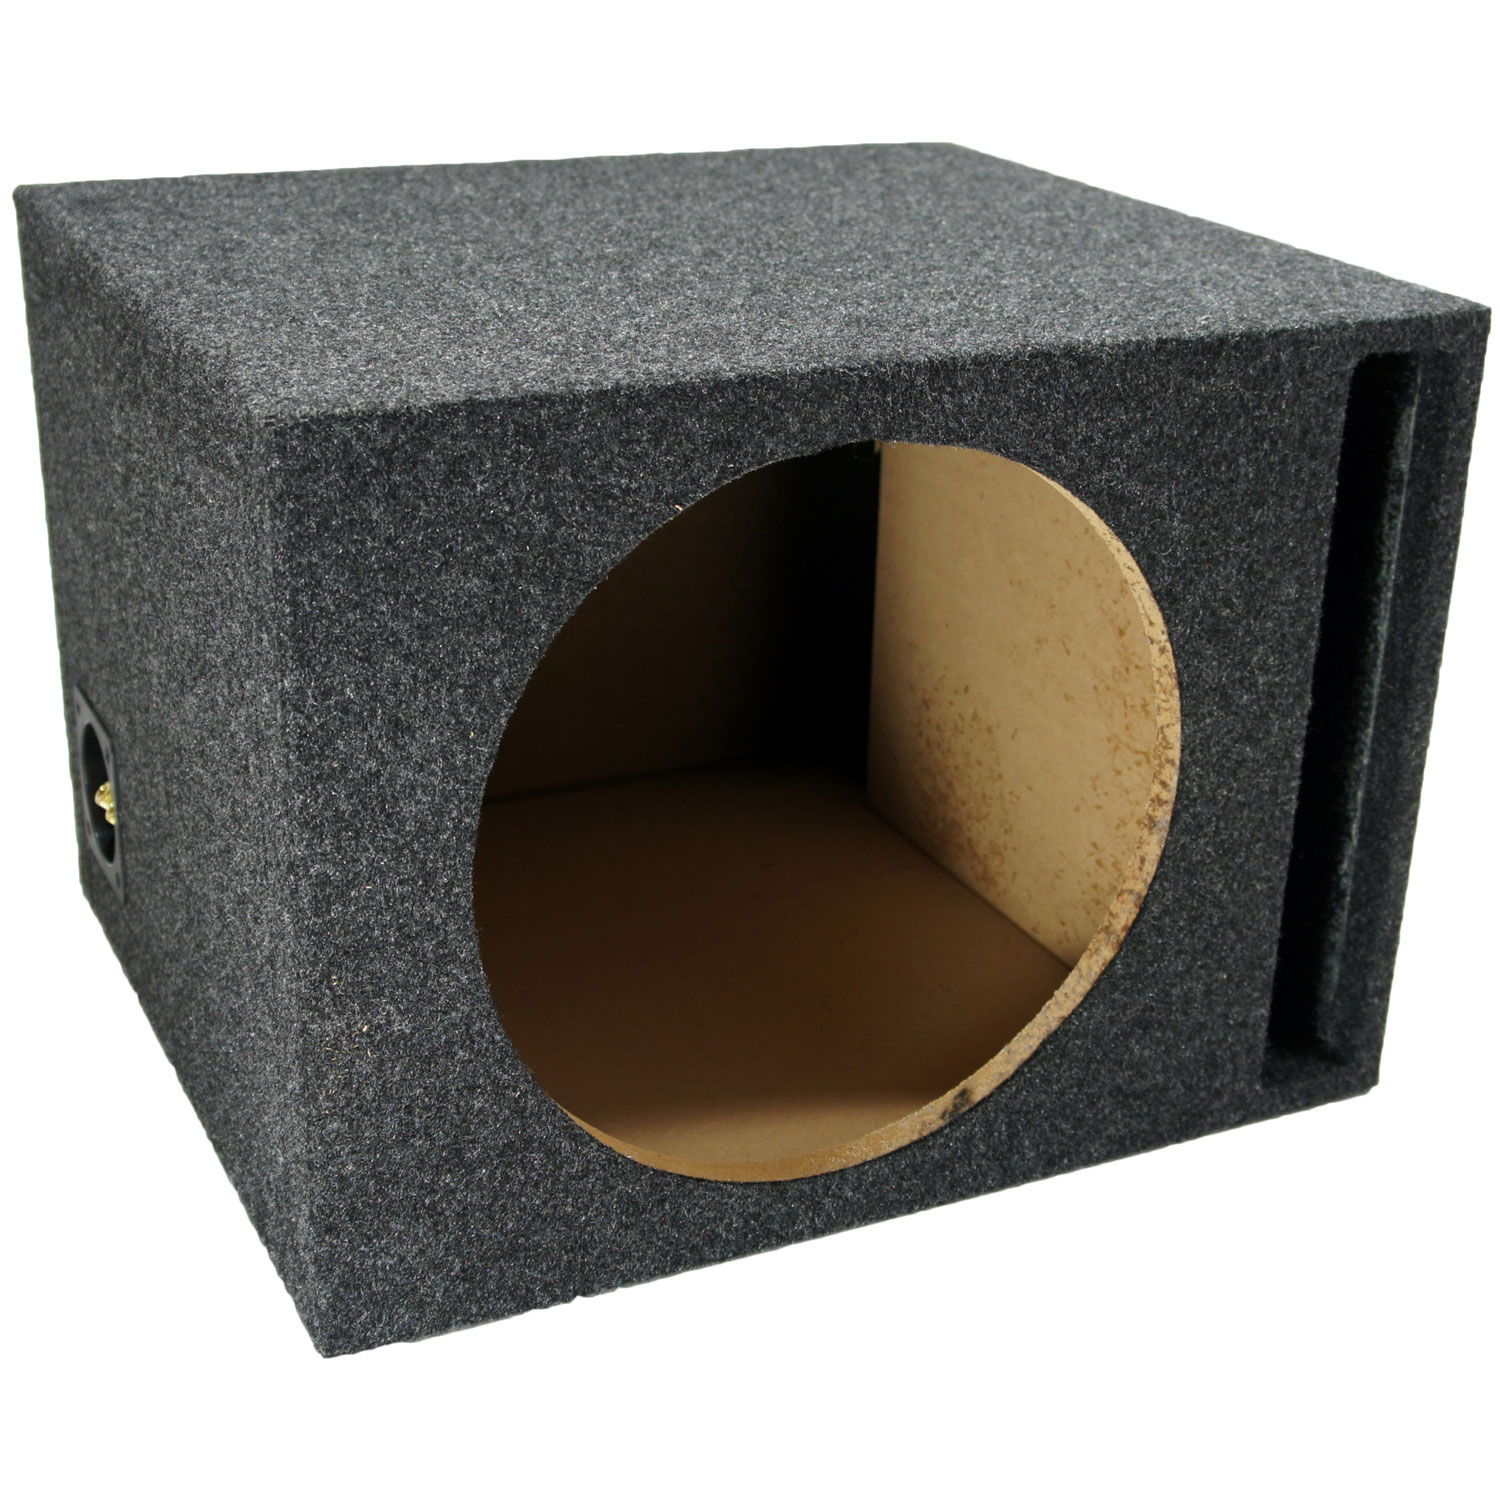 Car Audio Subwoofer Single 12 Vented Sub Box Enclosure